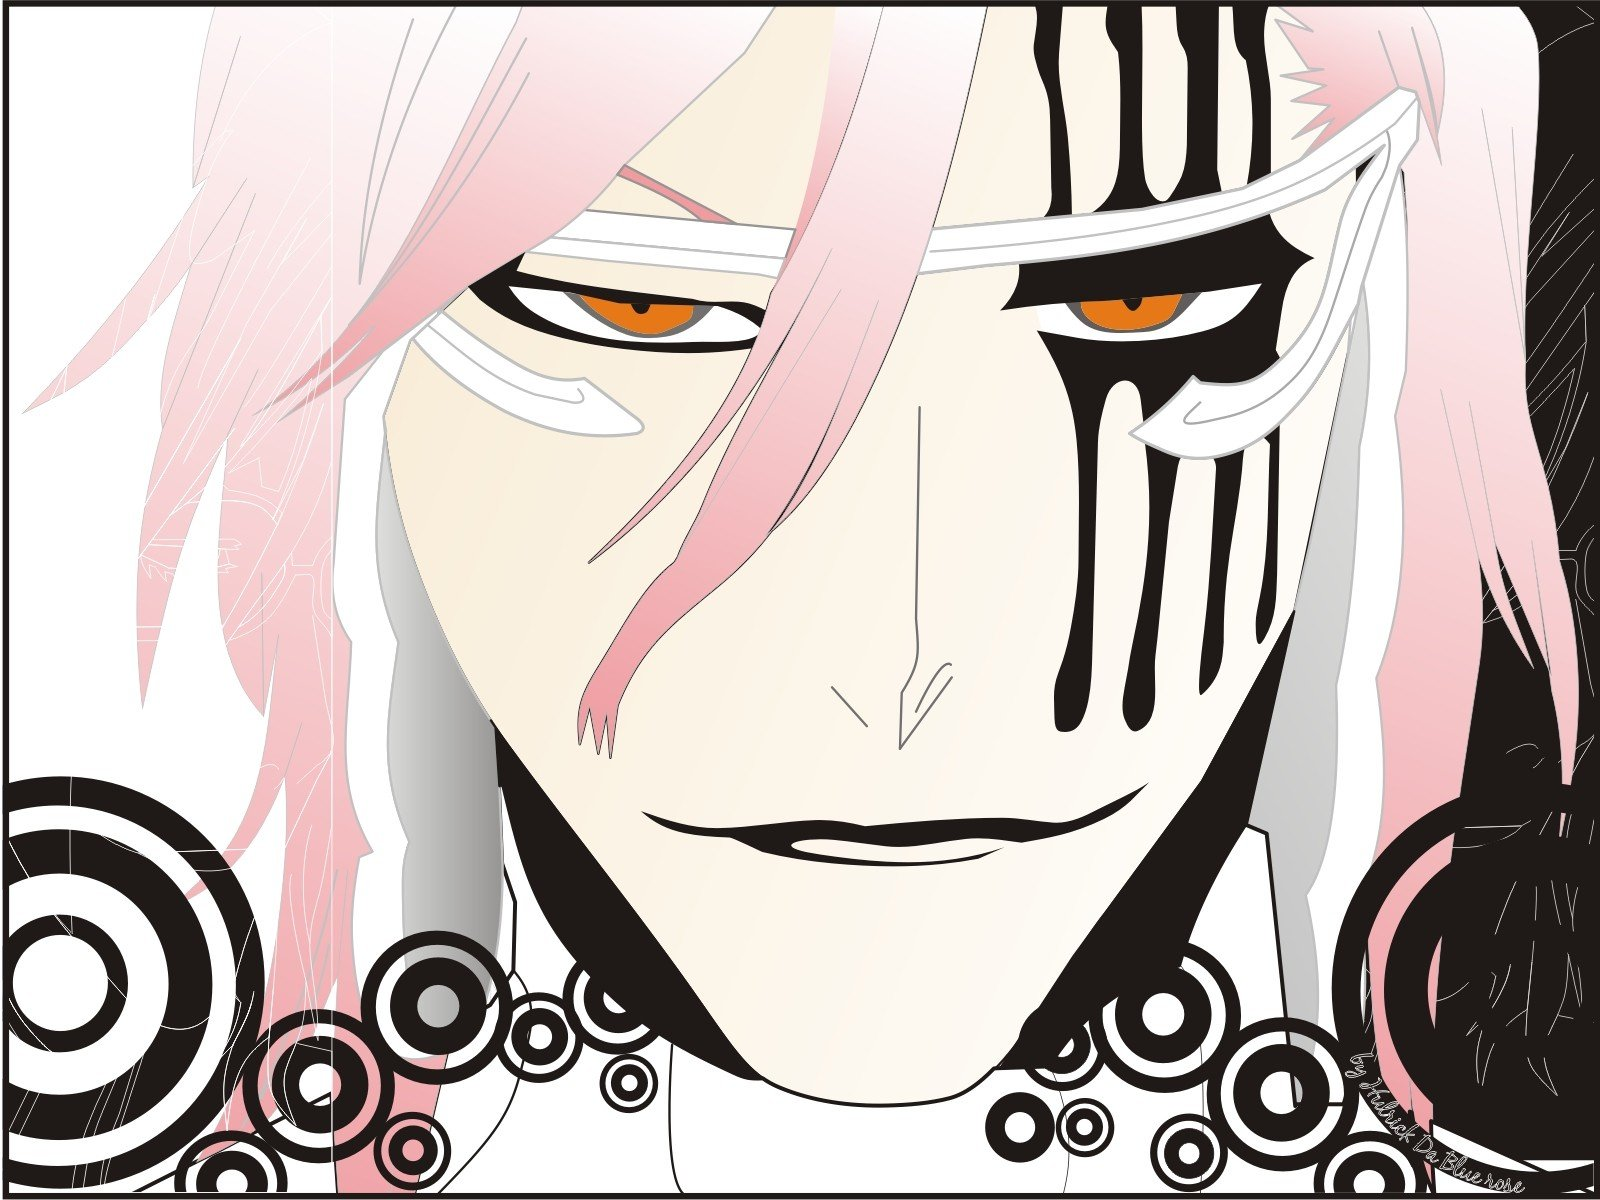 http://naruto-darkness.clan.su/_ph/14/615417074.jpg